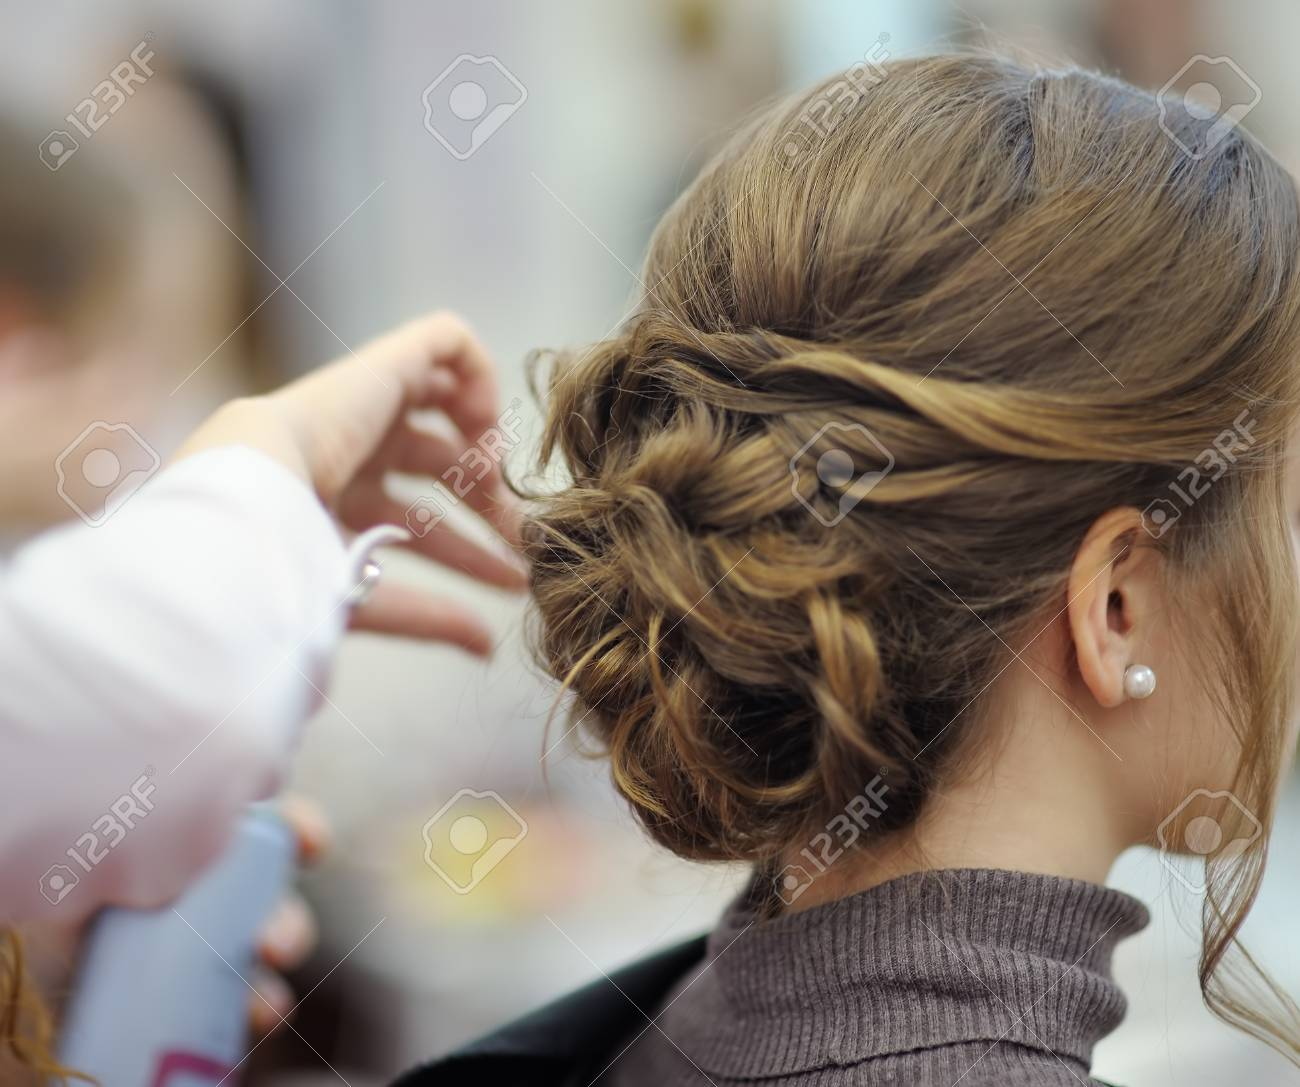 Young woman/bride getting her hair done before wedding or party. Wedding or prom ball hairstyles. - 116636839